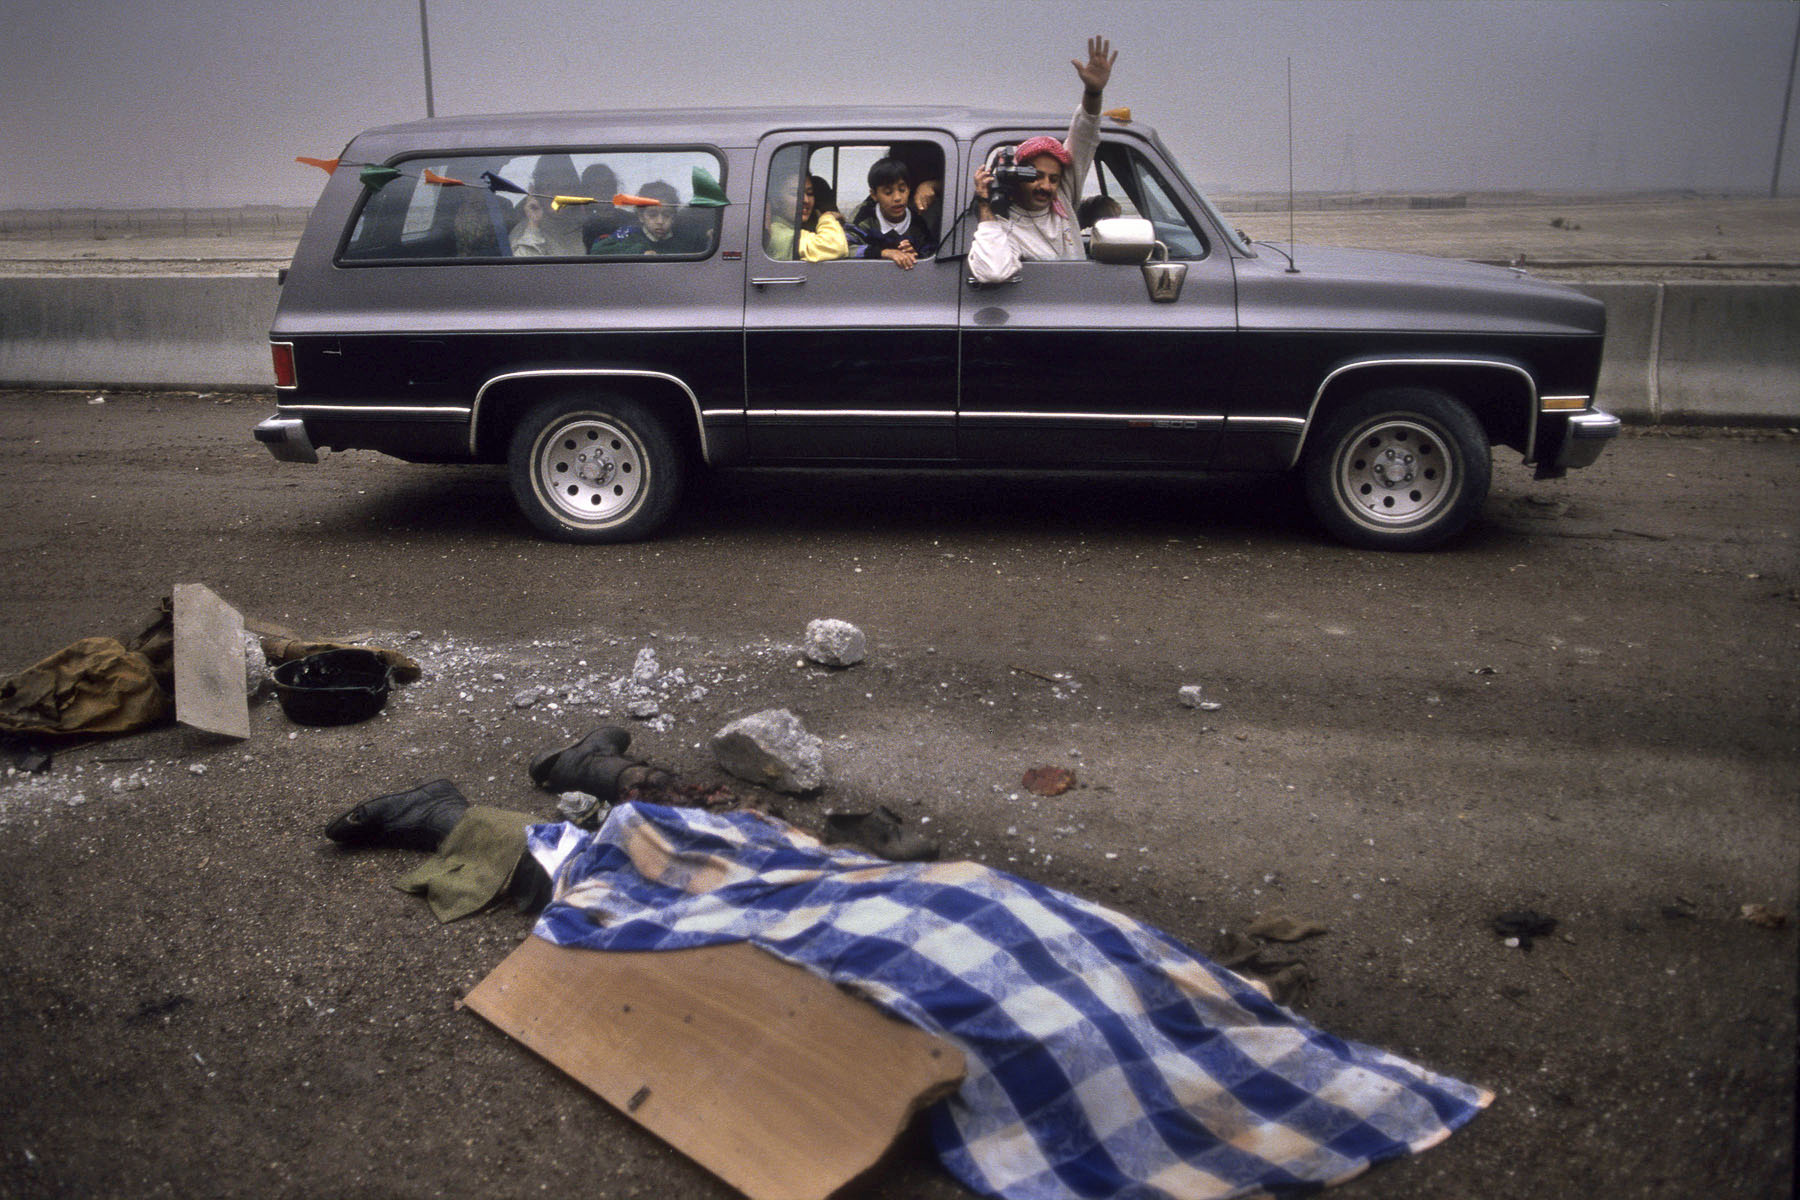 On the road to Basra, a Kuwaiti family drives past an Iraqi soldier's corpse in February 1991